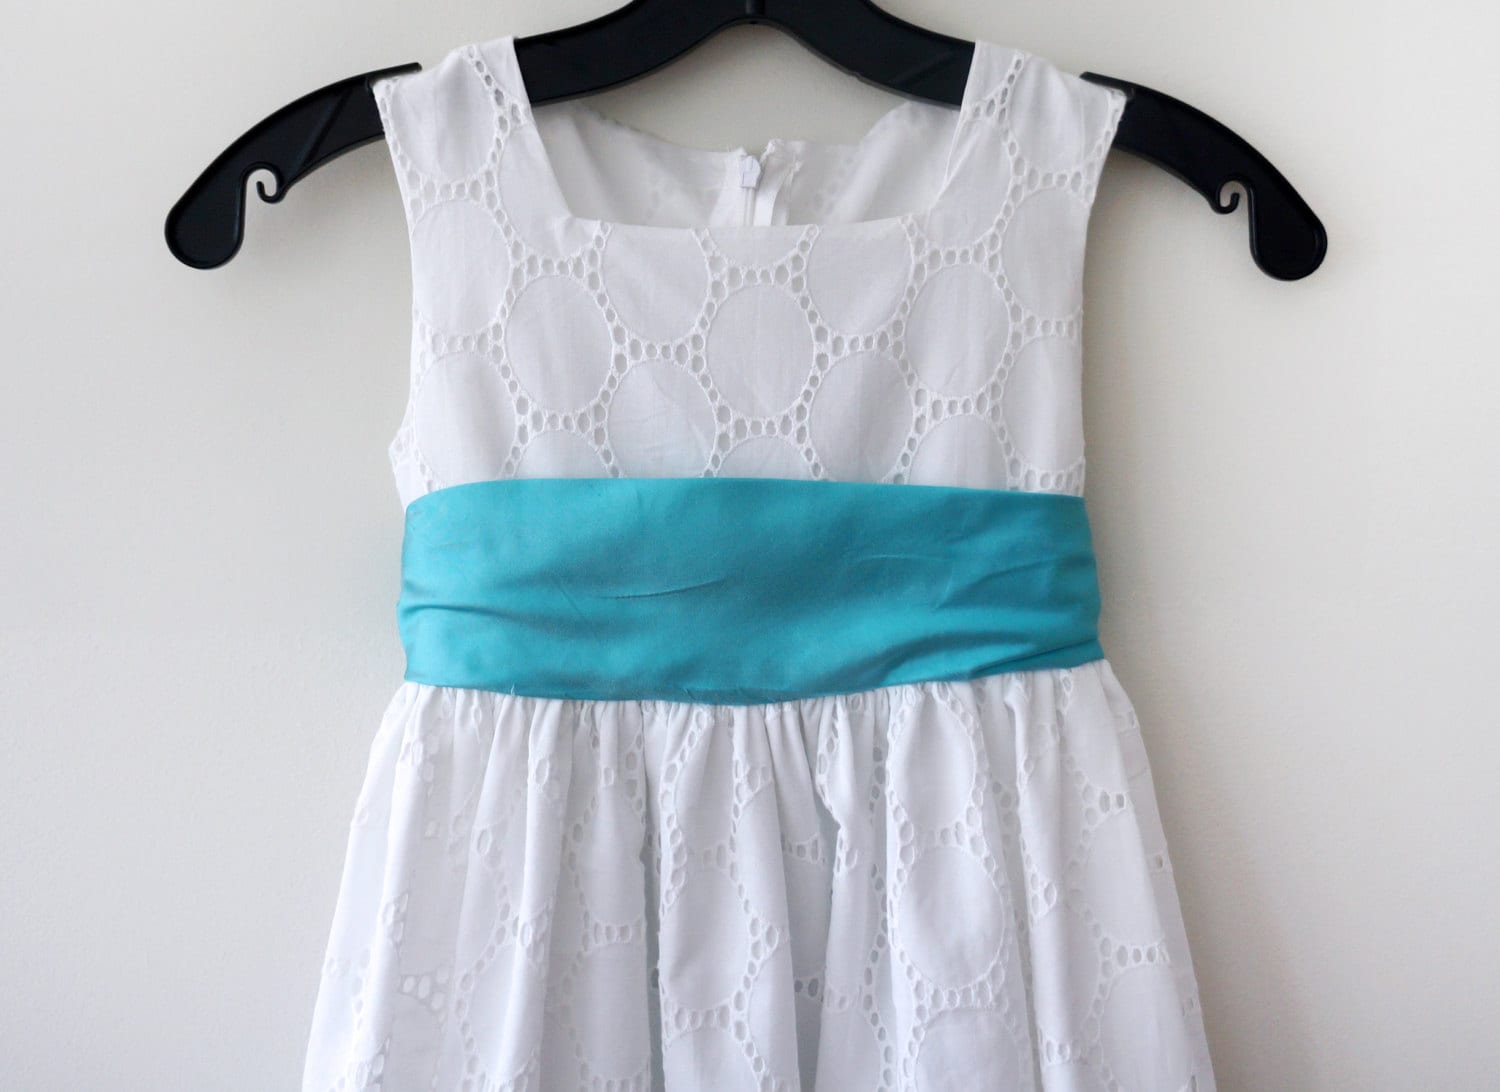 Eyelet lace dress with aqua blue sash flower girl dress eyelet eyelet lace dress with aqua blue sash flower girl dress eyelet dress custom color flower girl dress toddler girls summer dress izmirmasajfo